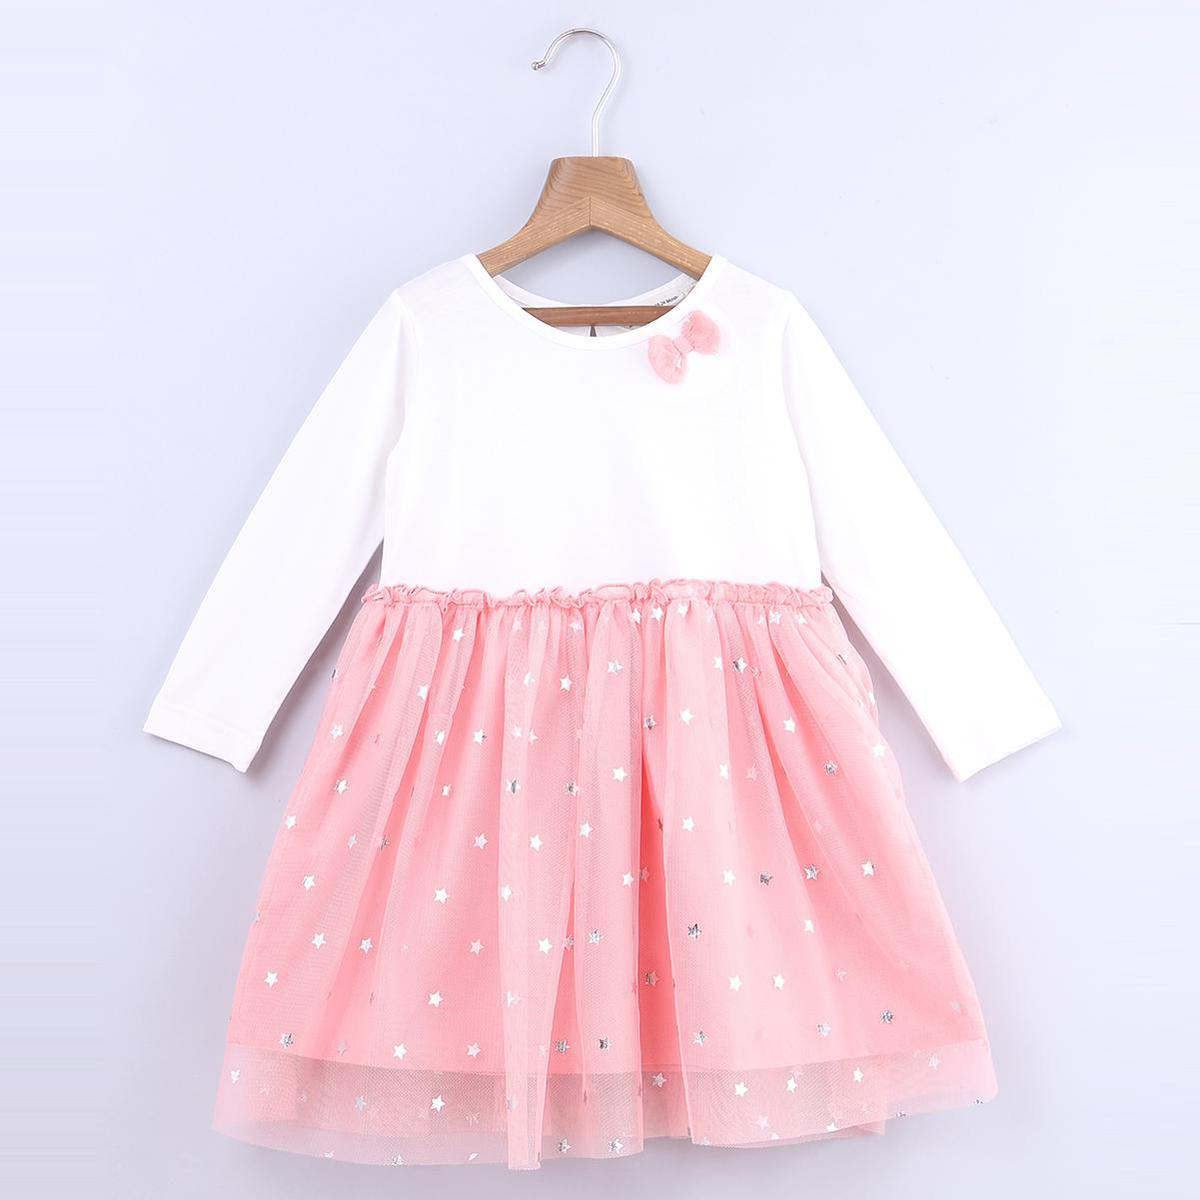 Beebay - Peach Colored Star Foil Print Cotton Dress For Infants Girls